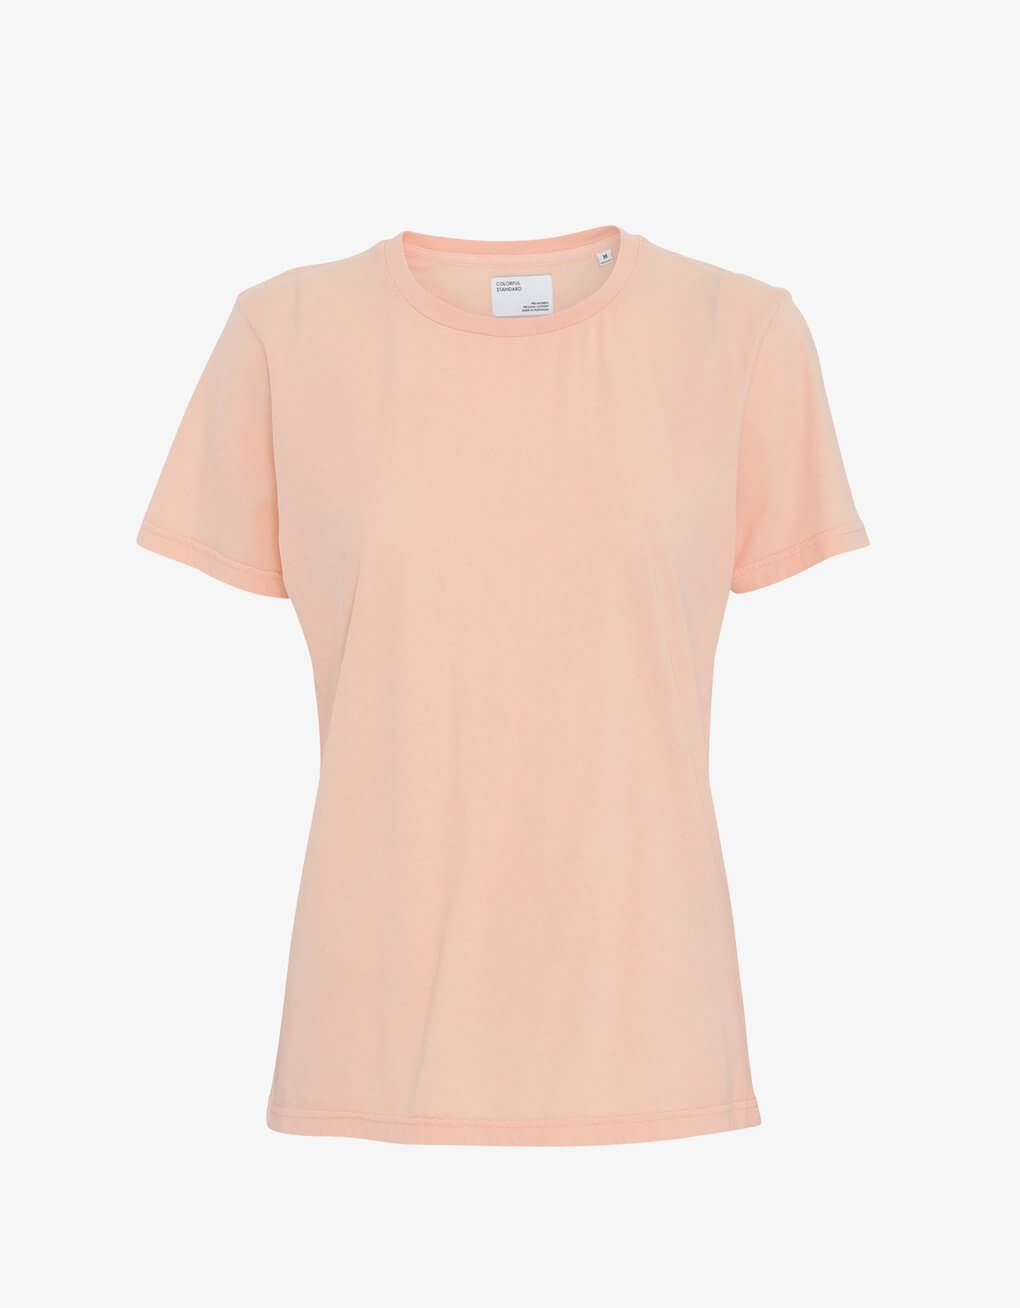 Colorful Standard - Womens Light Organic Tee - CS2051 - Paradise Peach